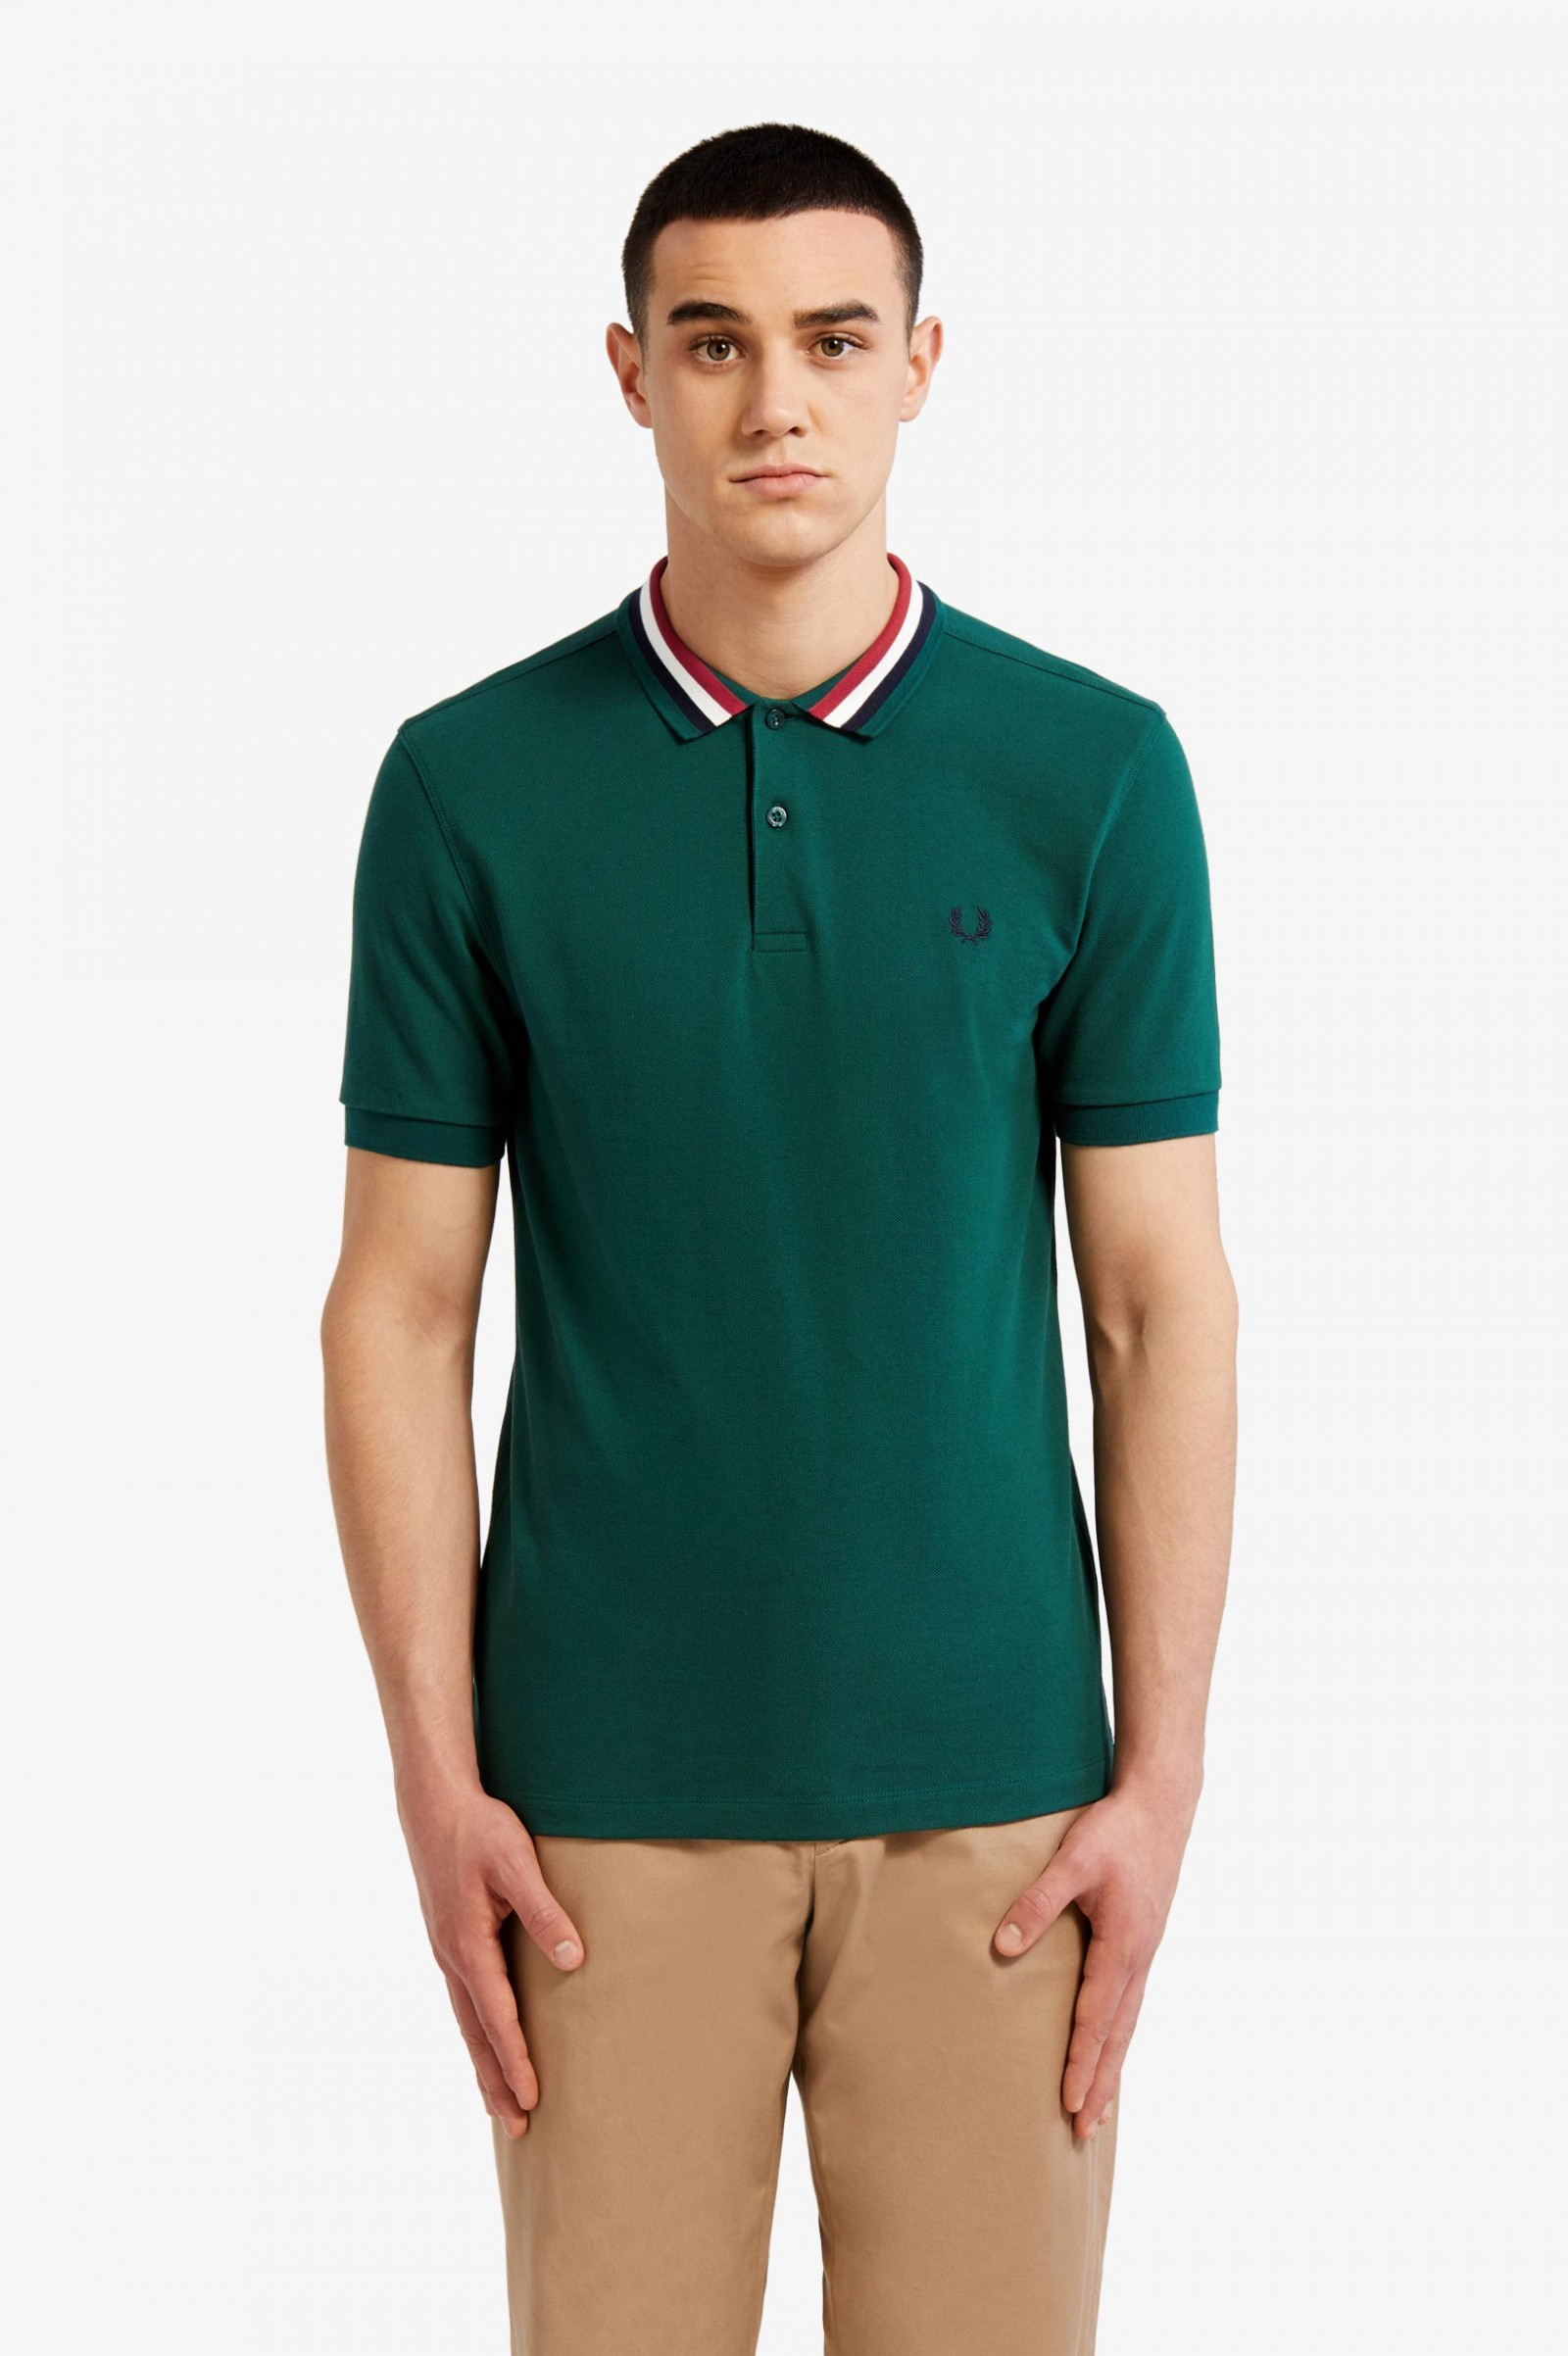 057dd9b7 M3600 - Cornsilk / Snow White / Snow White | The Fred Perry Shirt ...